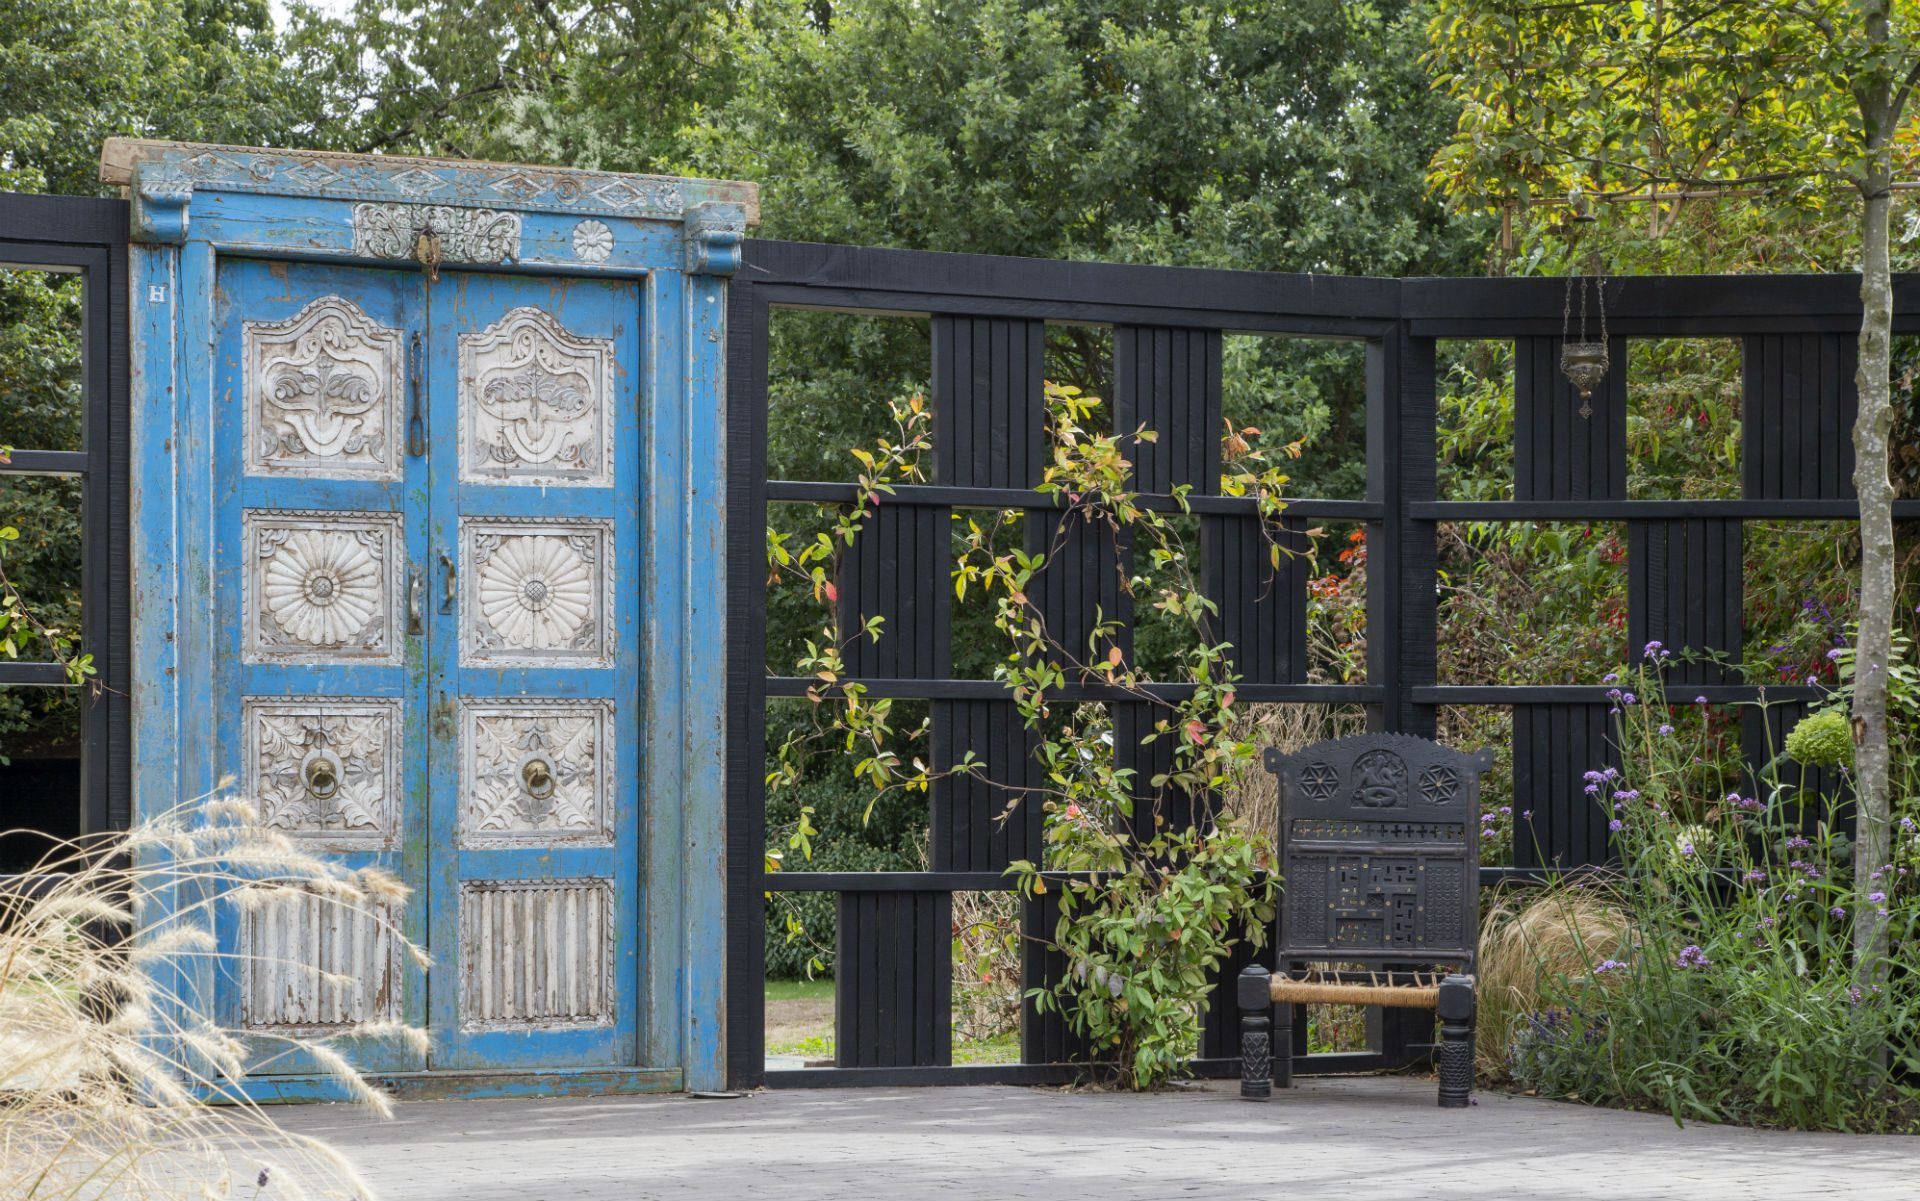 Portfolio Chic Entertaining Courtyard Garden Danbury Essex Vintage Indian Carved Door Garden Screen